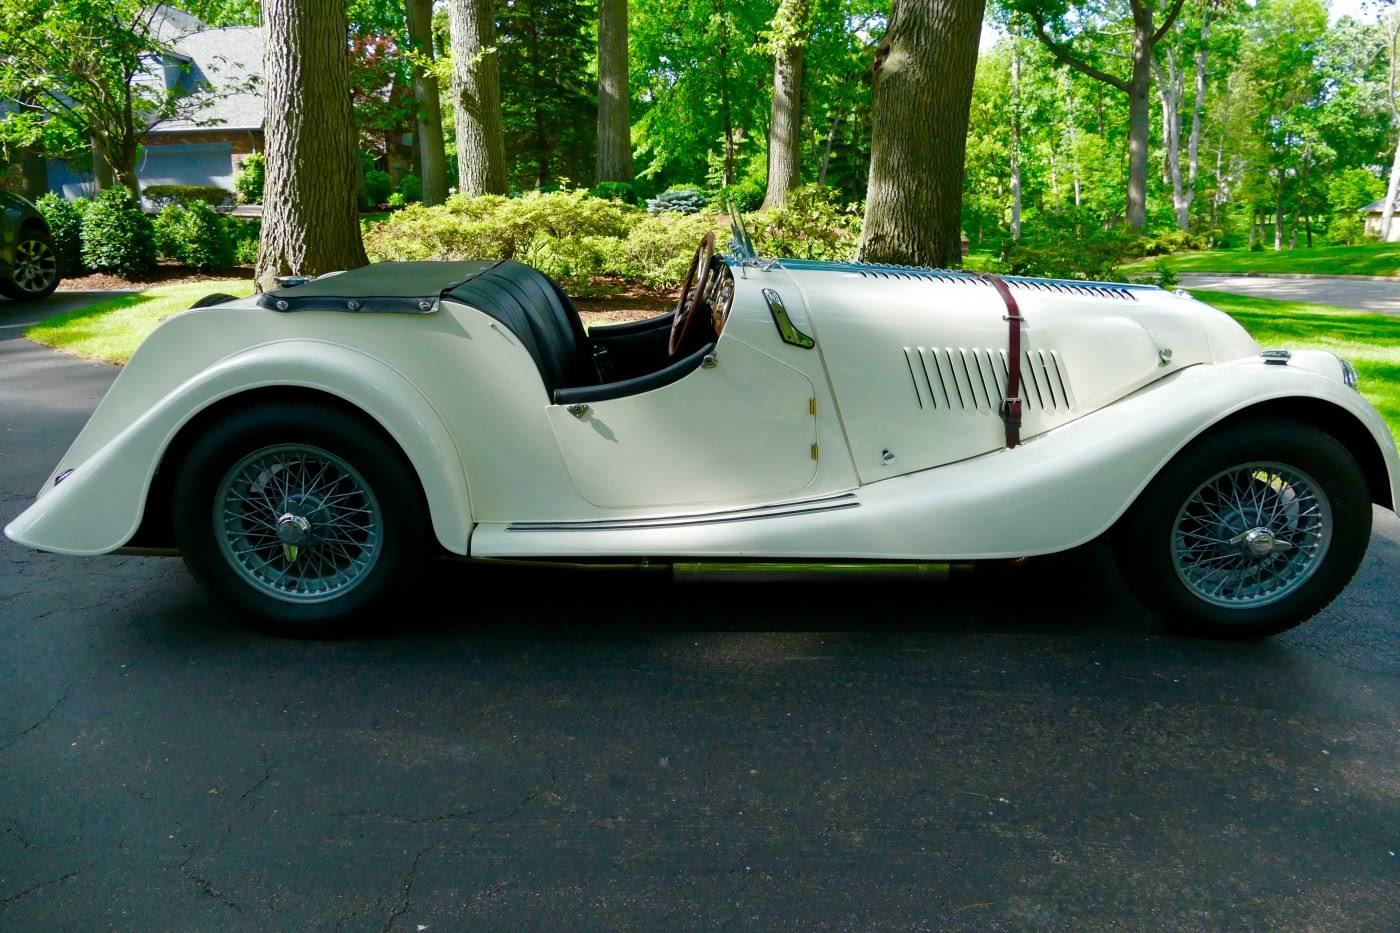 Pre-war and vintage car rental for weddings - BookAclassic